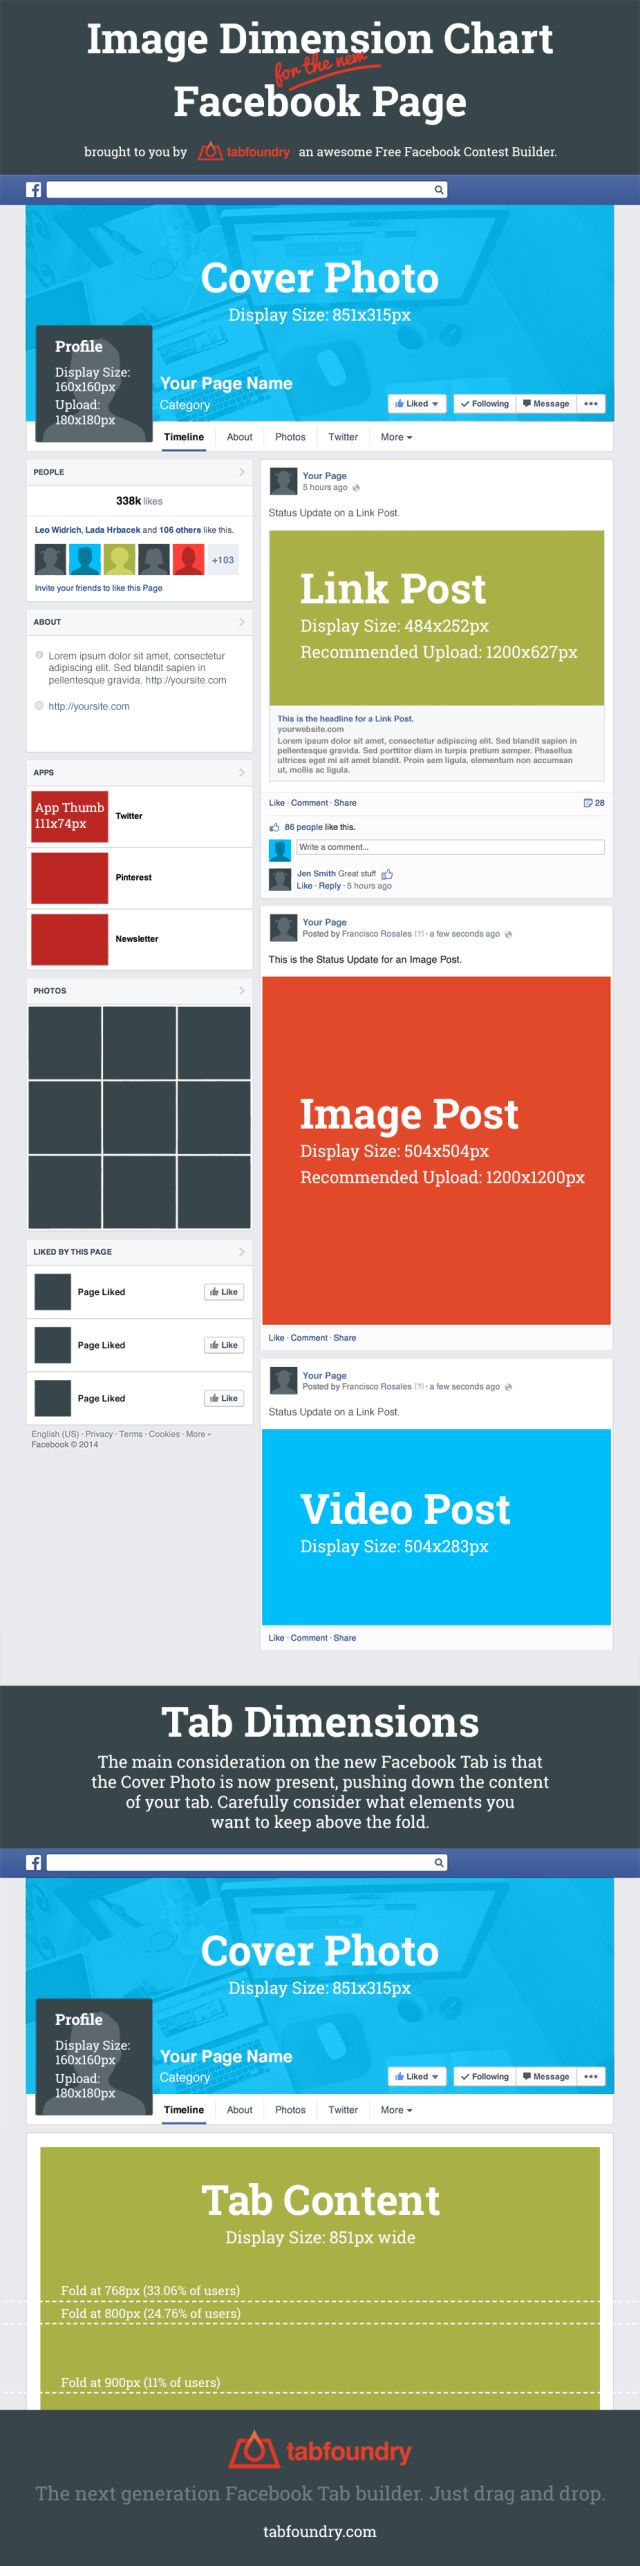 Image dimmension chart for the new FaceBook Page #infographic